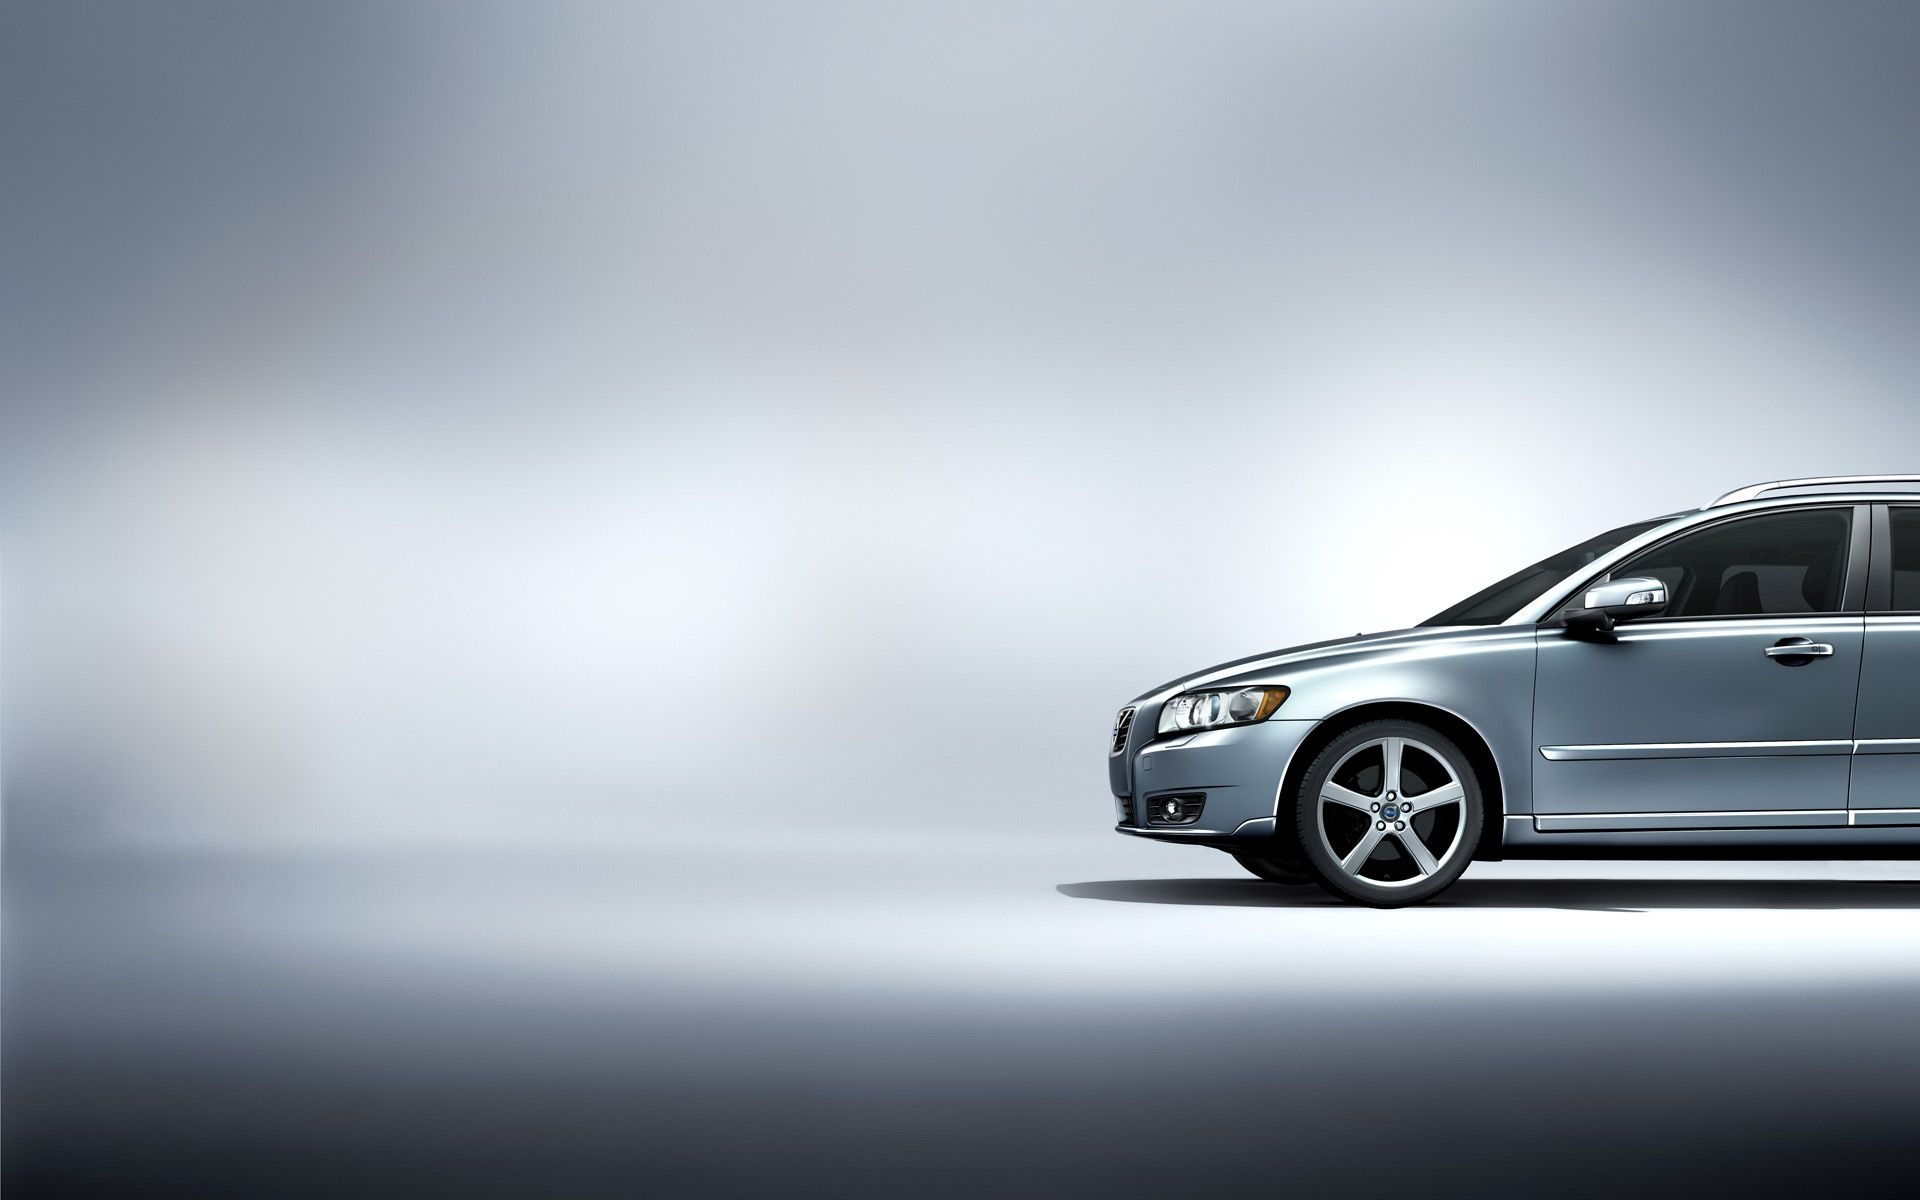 Wallpaper Car Background Hd Pulse On Cars Image For Mobile Grey